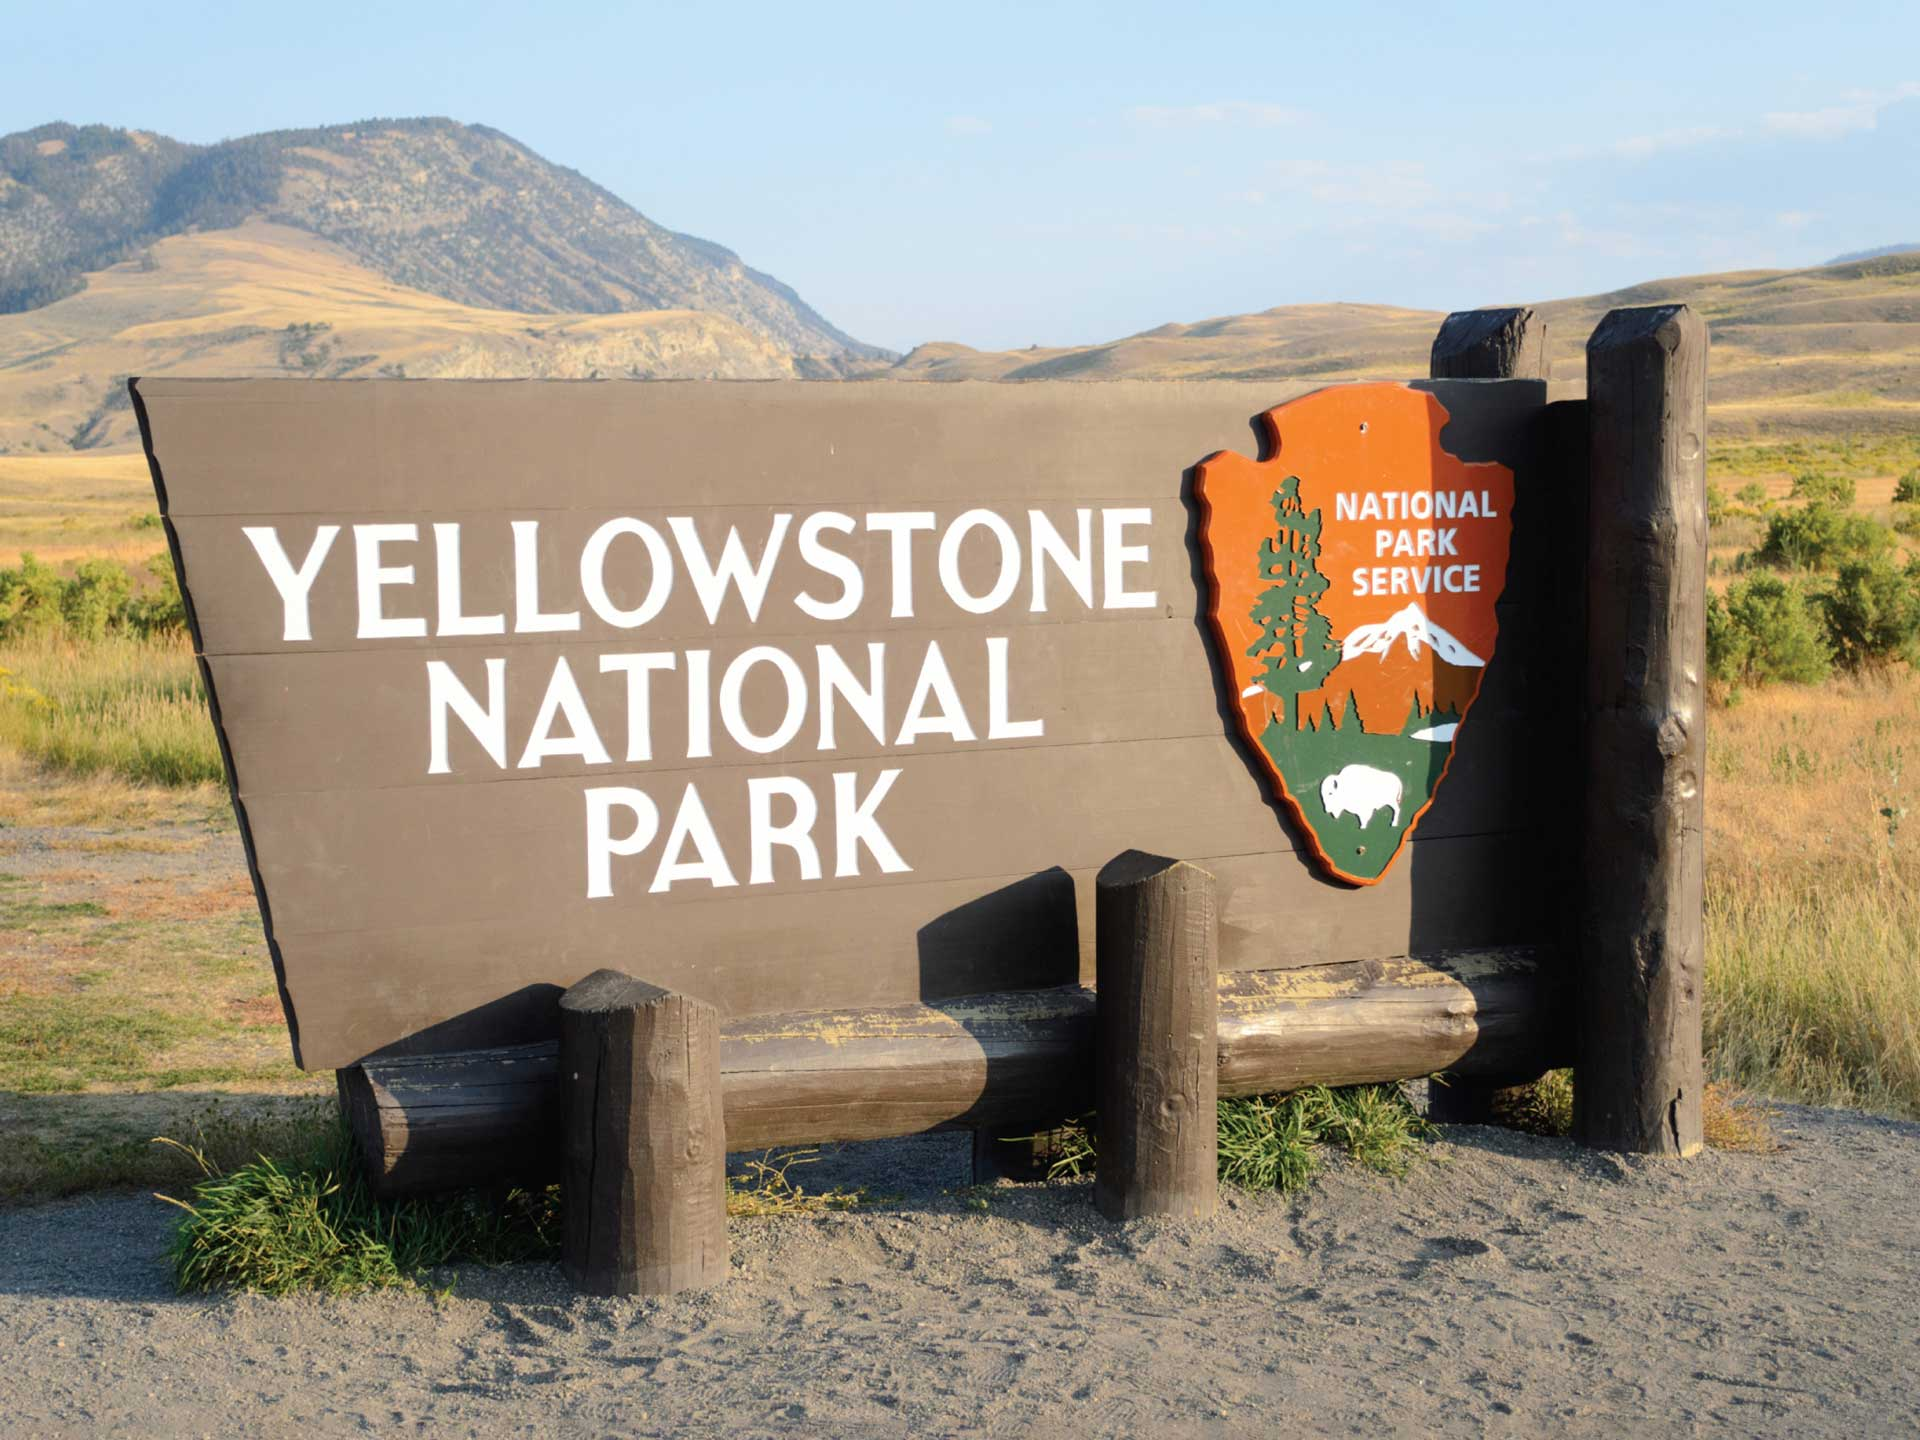 Yellowstone National Park Report Shows Climate Change Threat